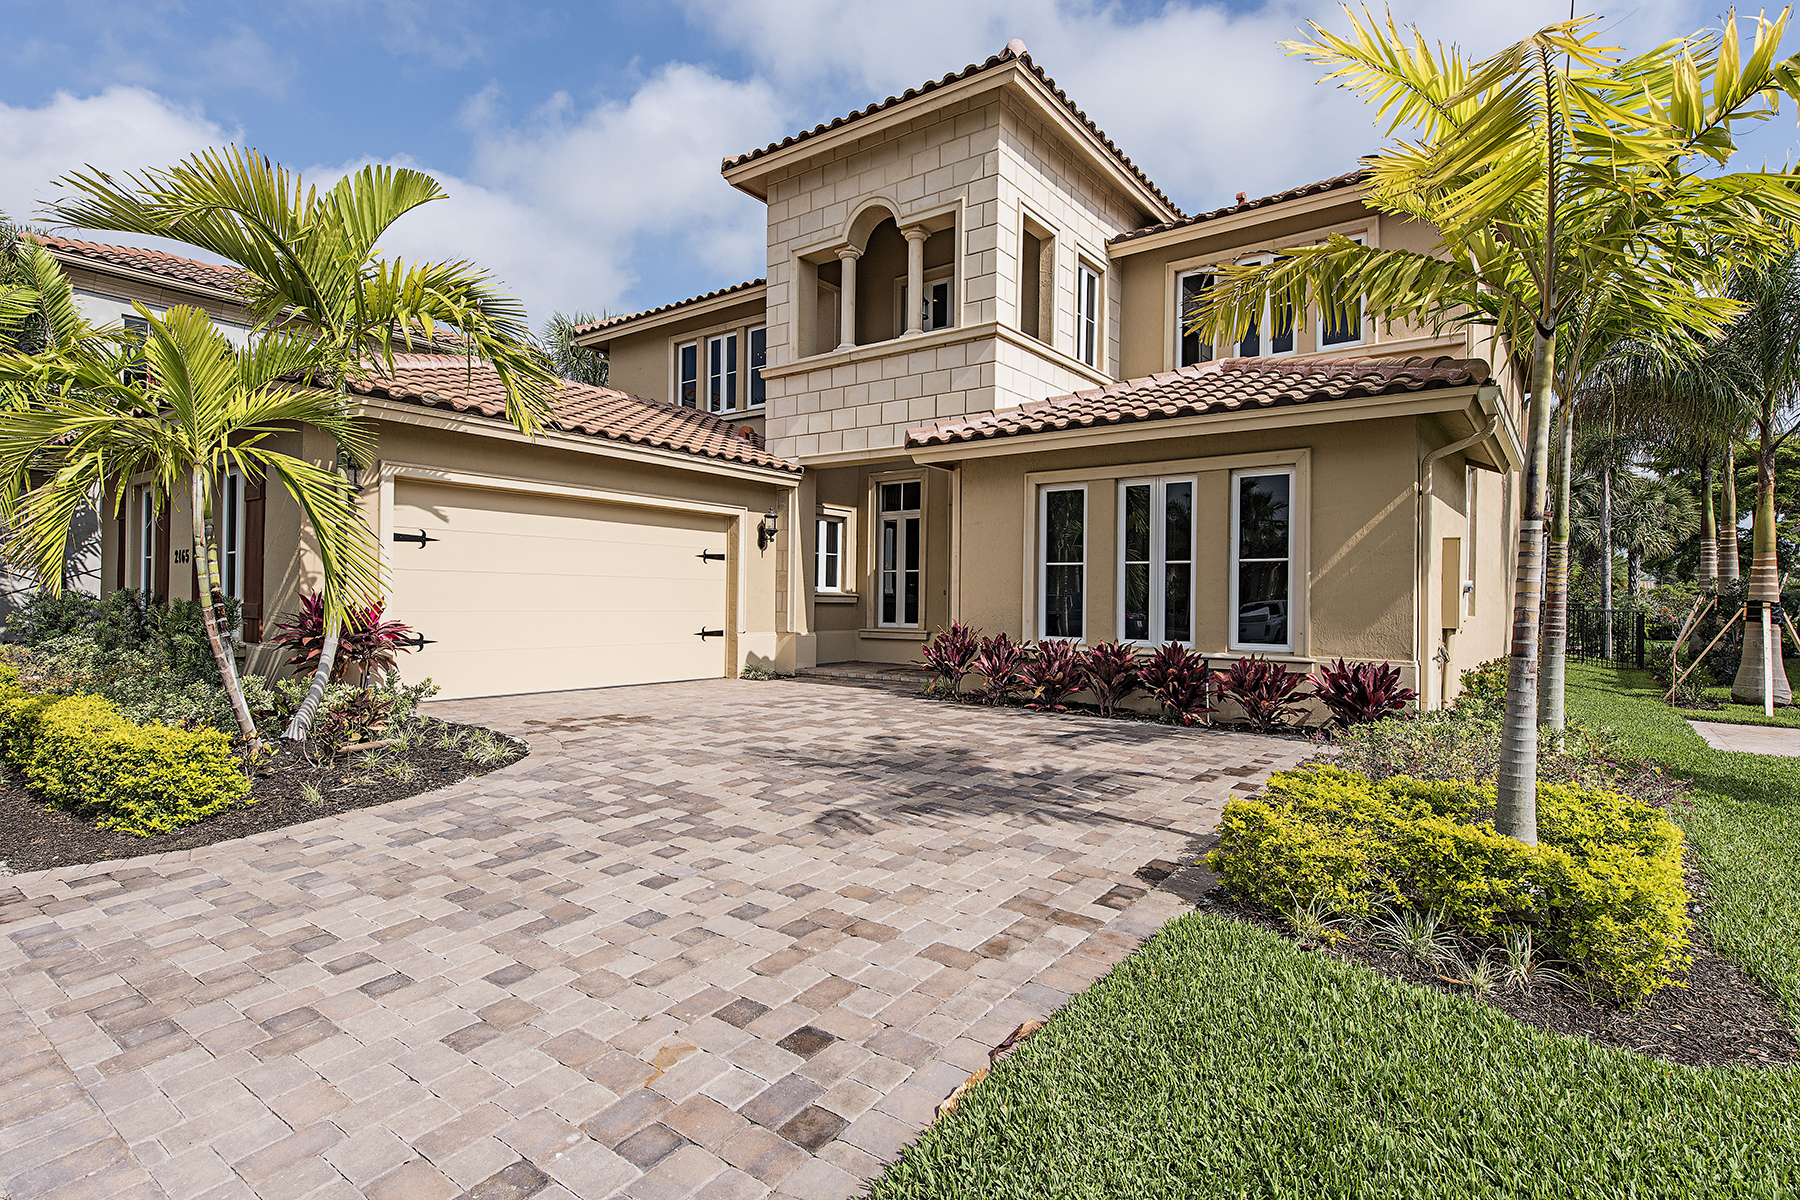 Single Family Home for Sale at Naples 2165 Asti Ct, Naples, Florida 34105 United States